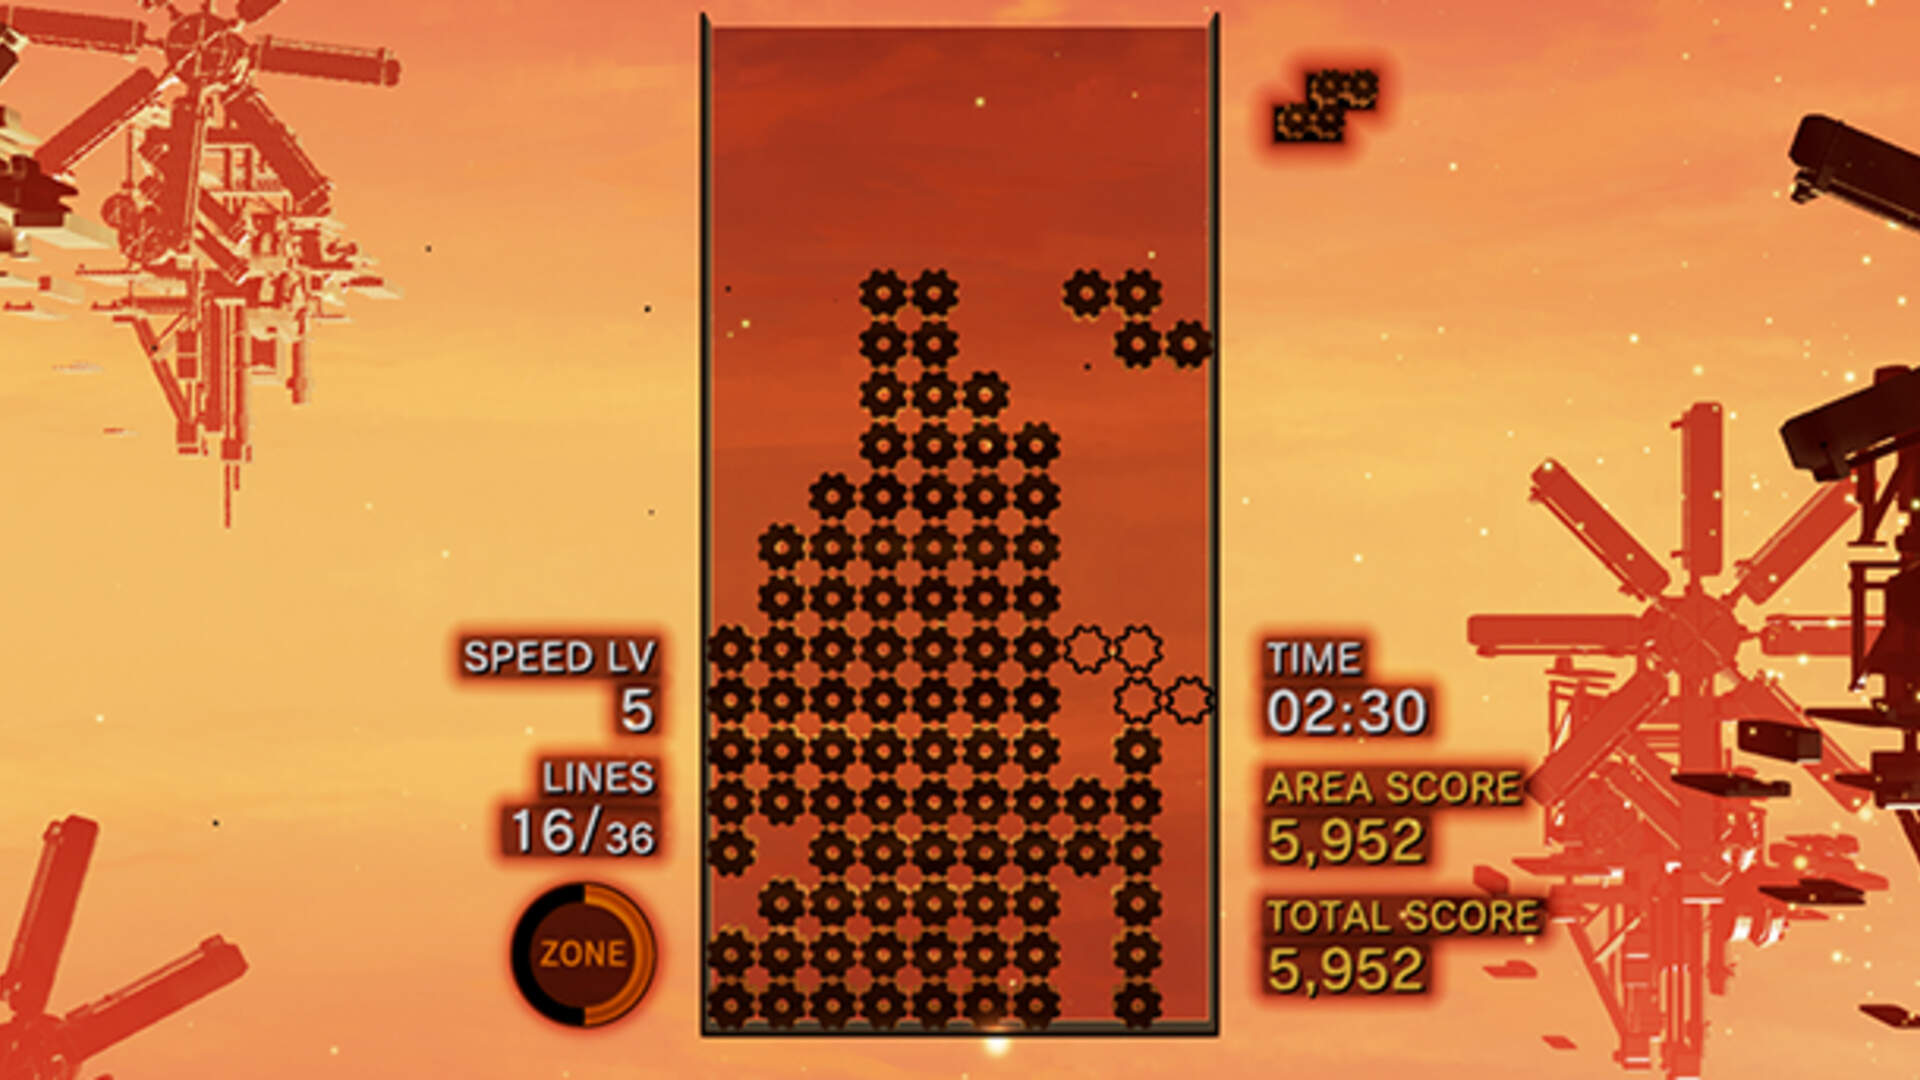 Why Tetris Effect Won't Have Competitive Multiplayer According to its Developers